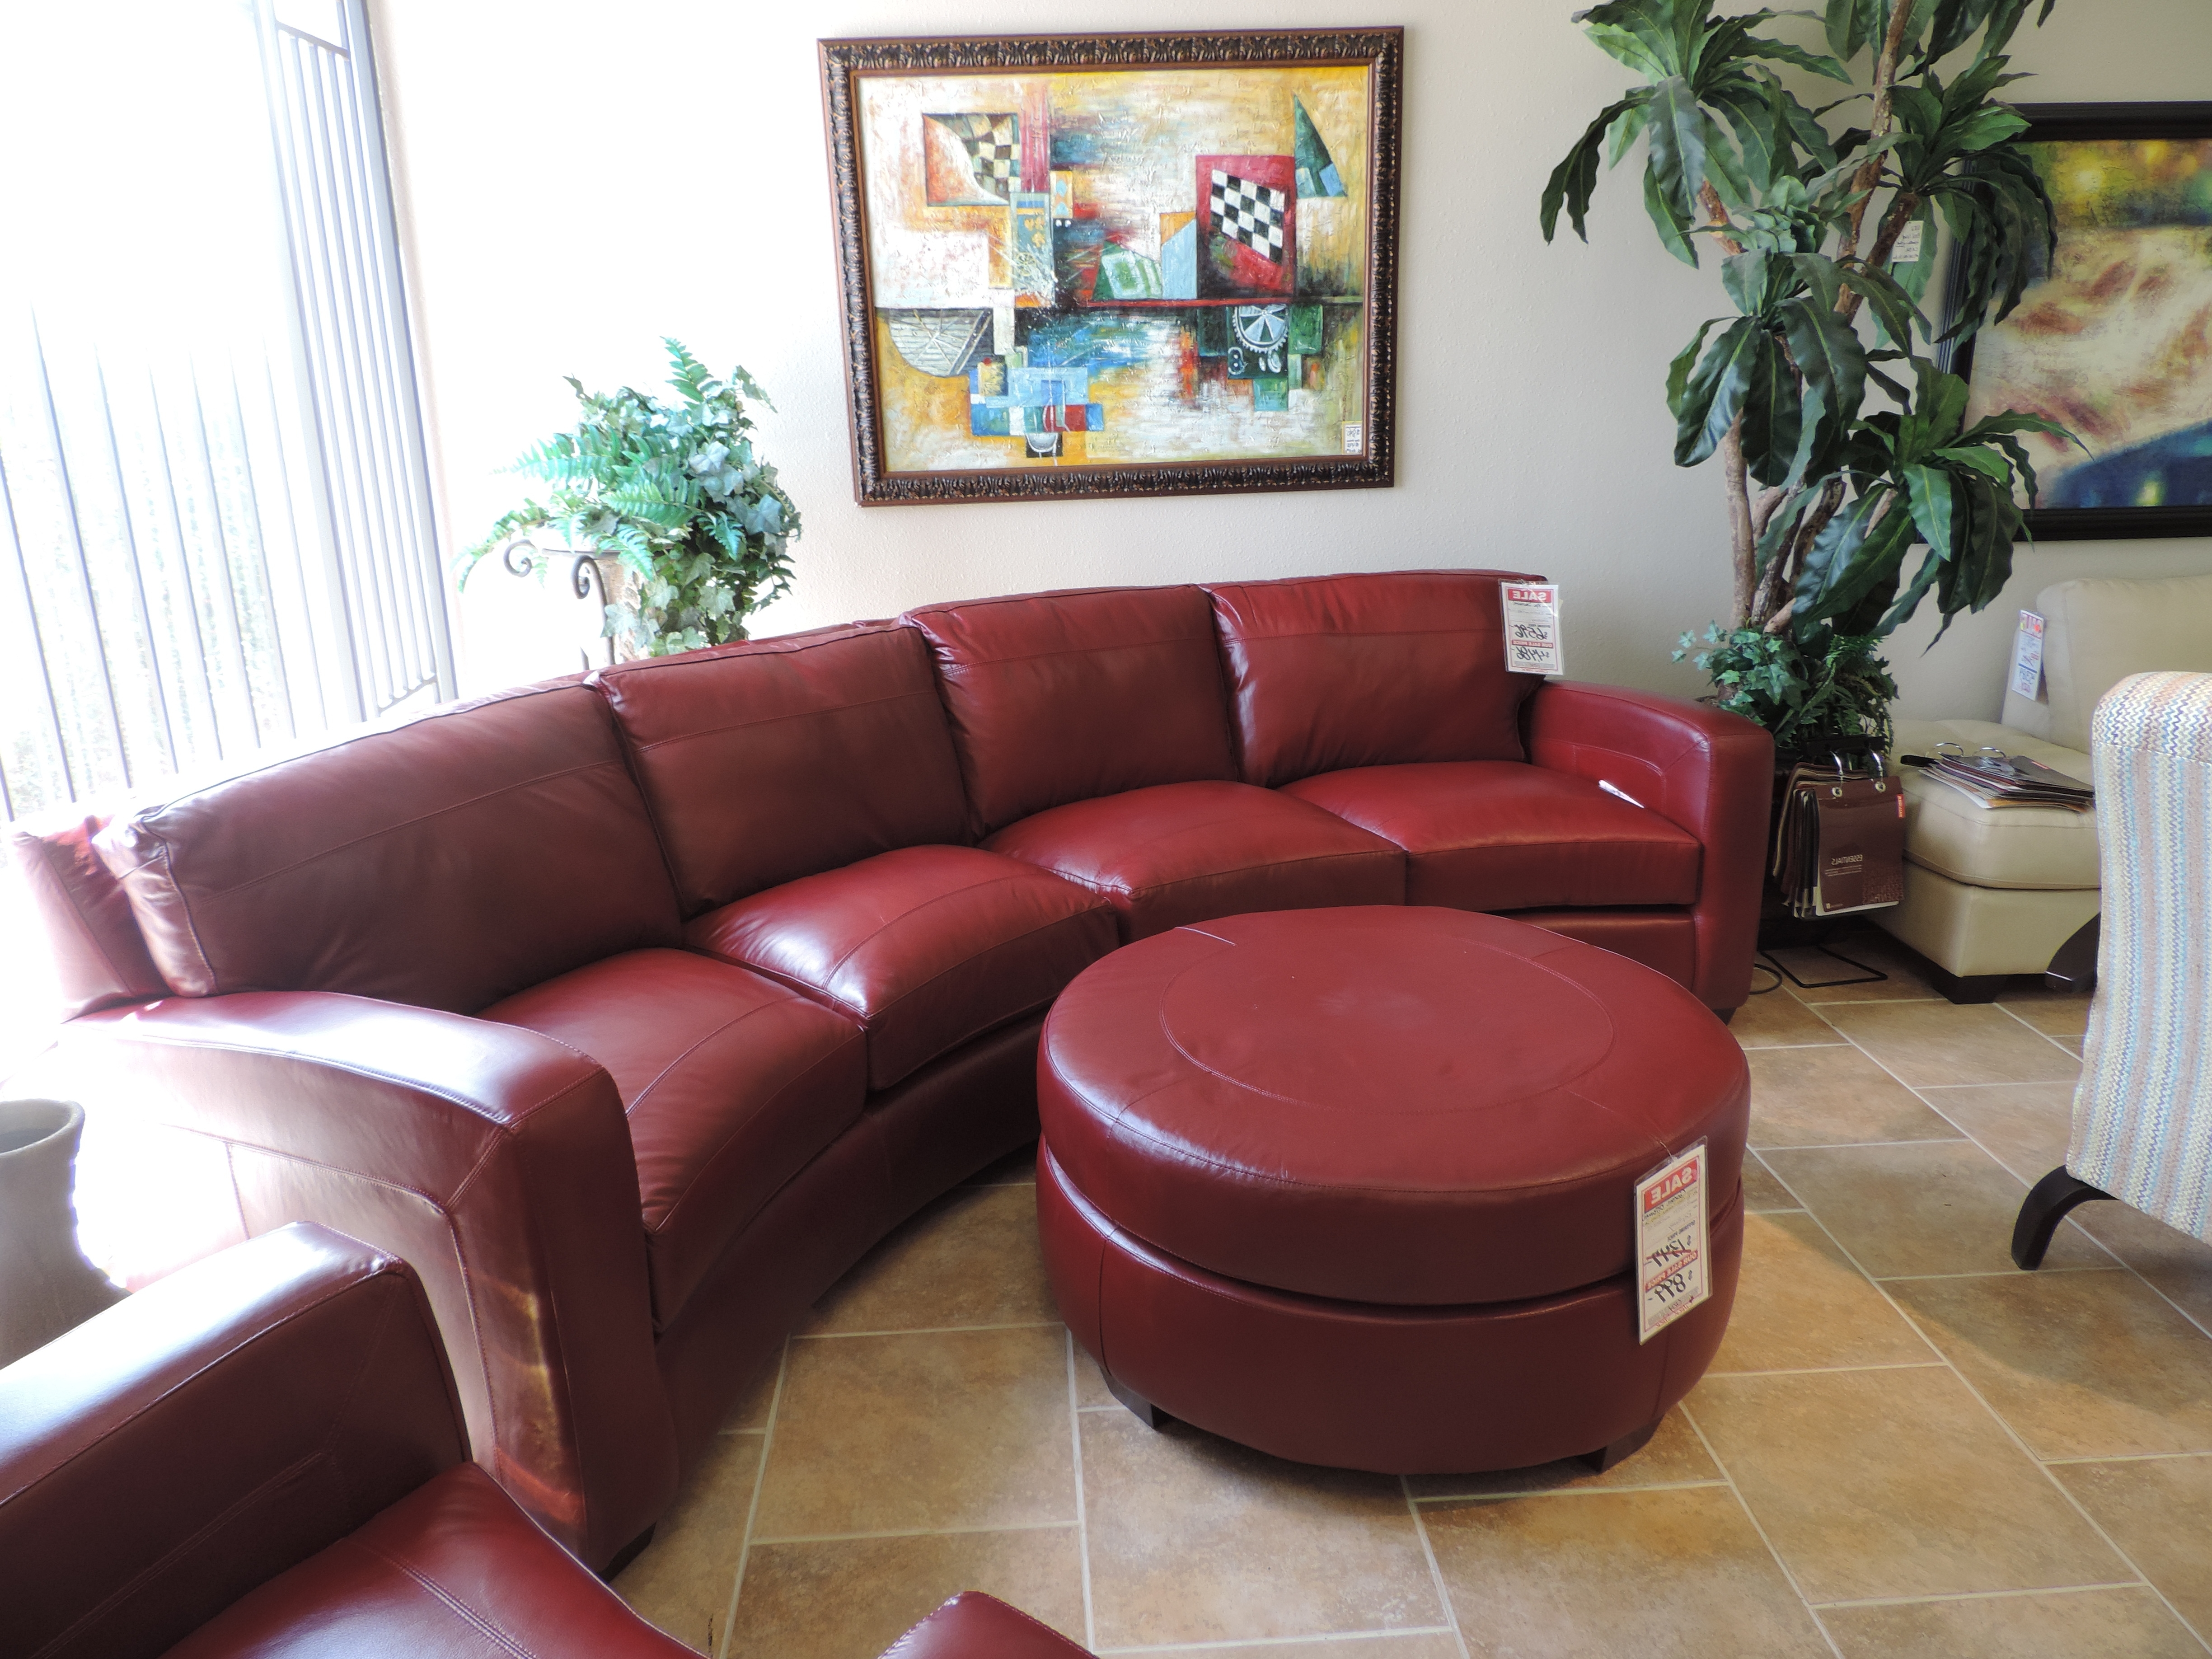 Red Leather Sectionals With Ottoman For 2018 Red Leather Sectional Sofa With Matching Chair And Ottoman (View 11 of 15)